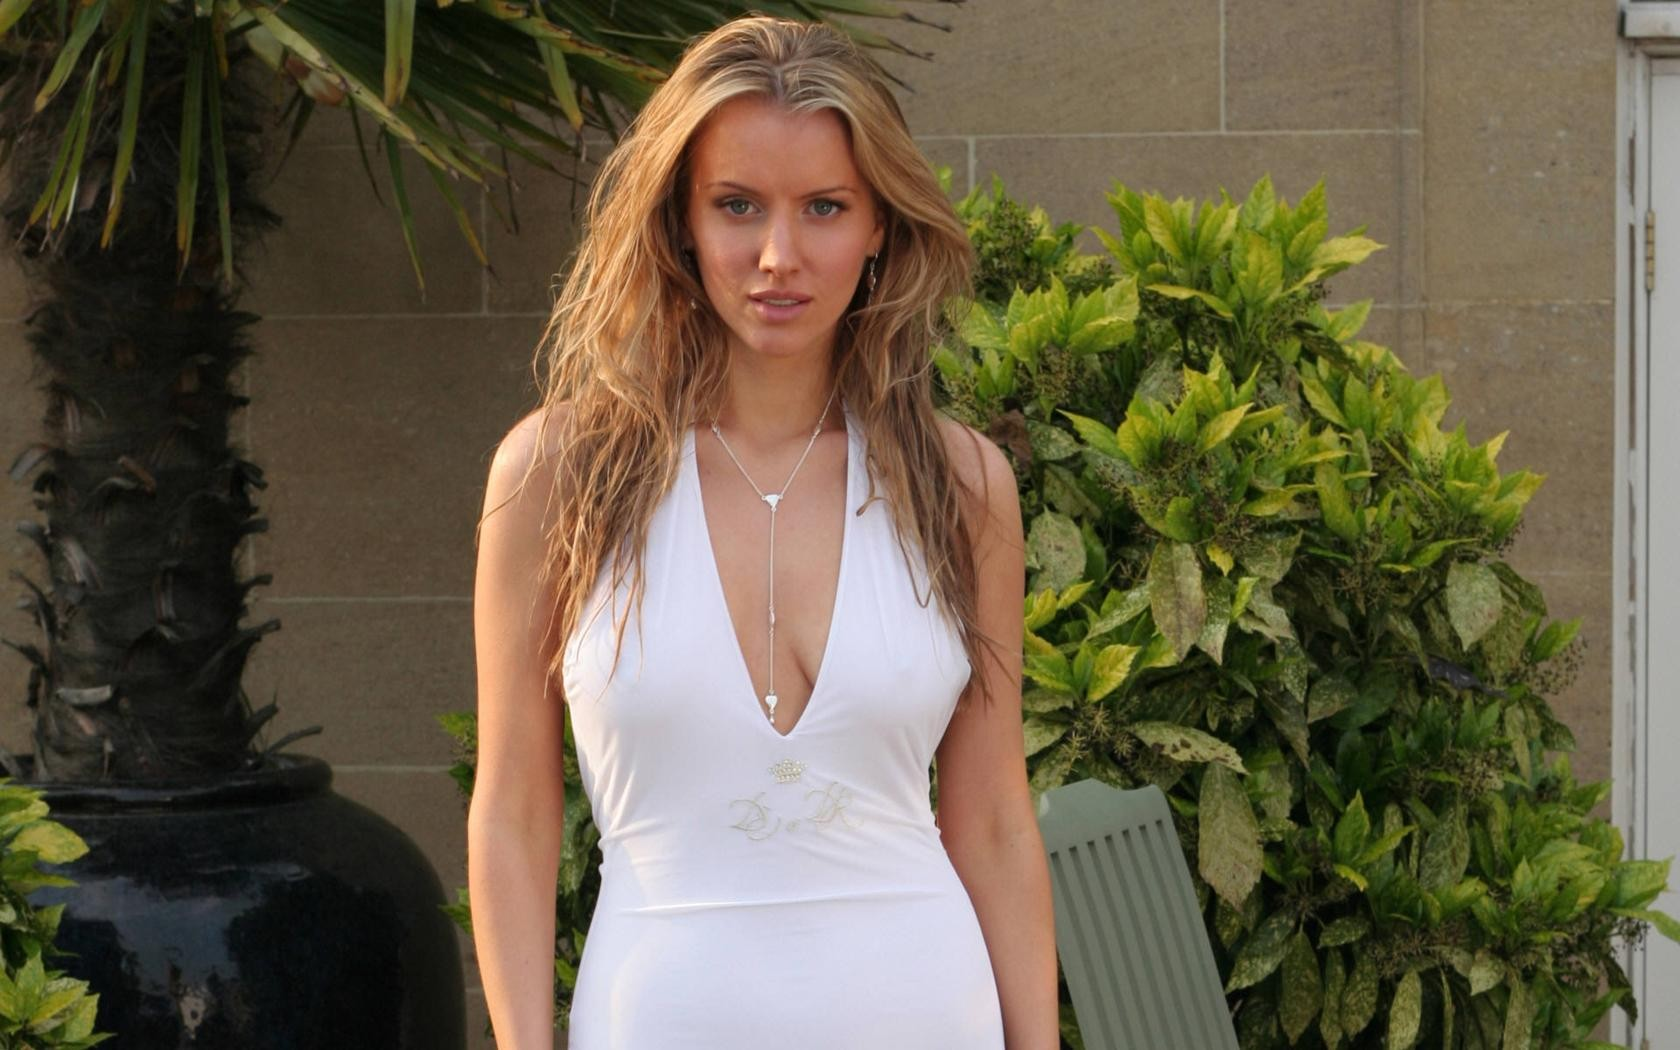 Tiffany Mulheron (born 1984) nudes (88 foto and video), Sexy, Cleavage, Boobs, braless 2018